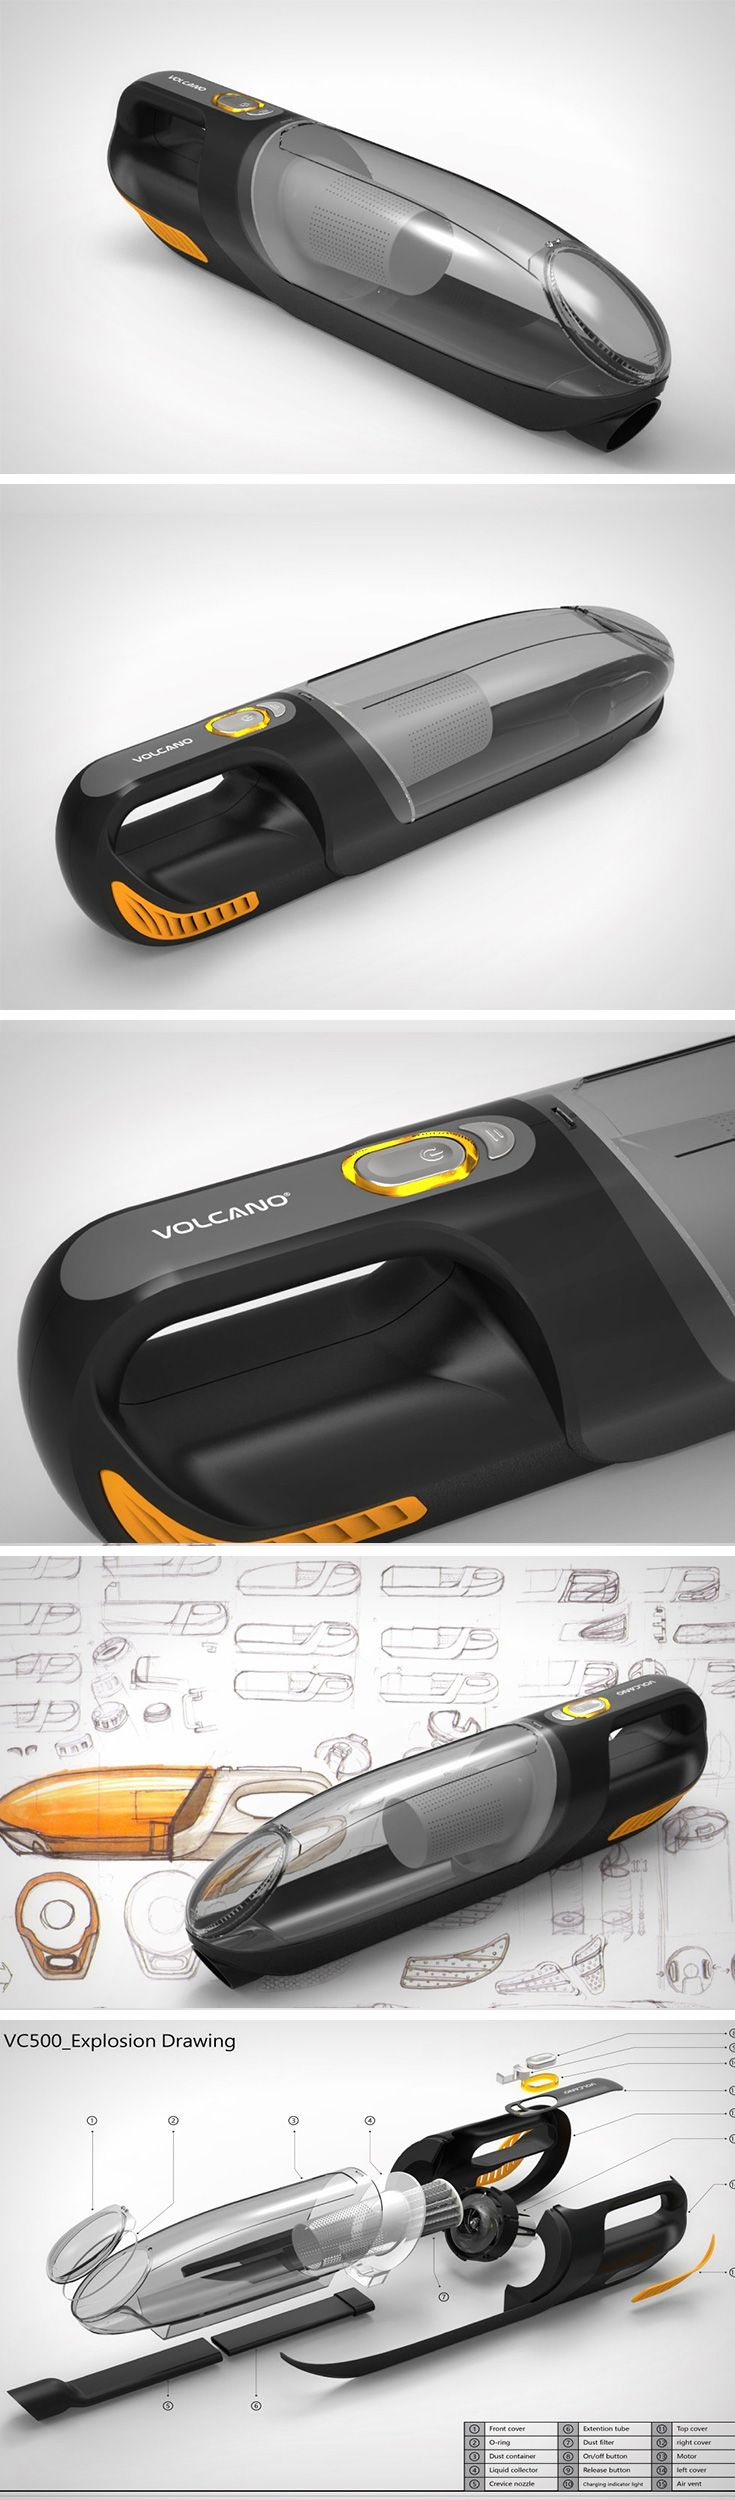 The VC500 dustbuster comes with an extendable snout that allows it to clean your car inside out, reaching hitherto un-cleanable crevices and gaps like the underside of the seat. The vacuum is designed to handle dry as well as wet cleaning. Couple that with its incredibly portable size, the VC500 may be just the perfect handheld appliance to clean the interiors of your car.